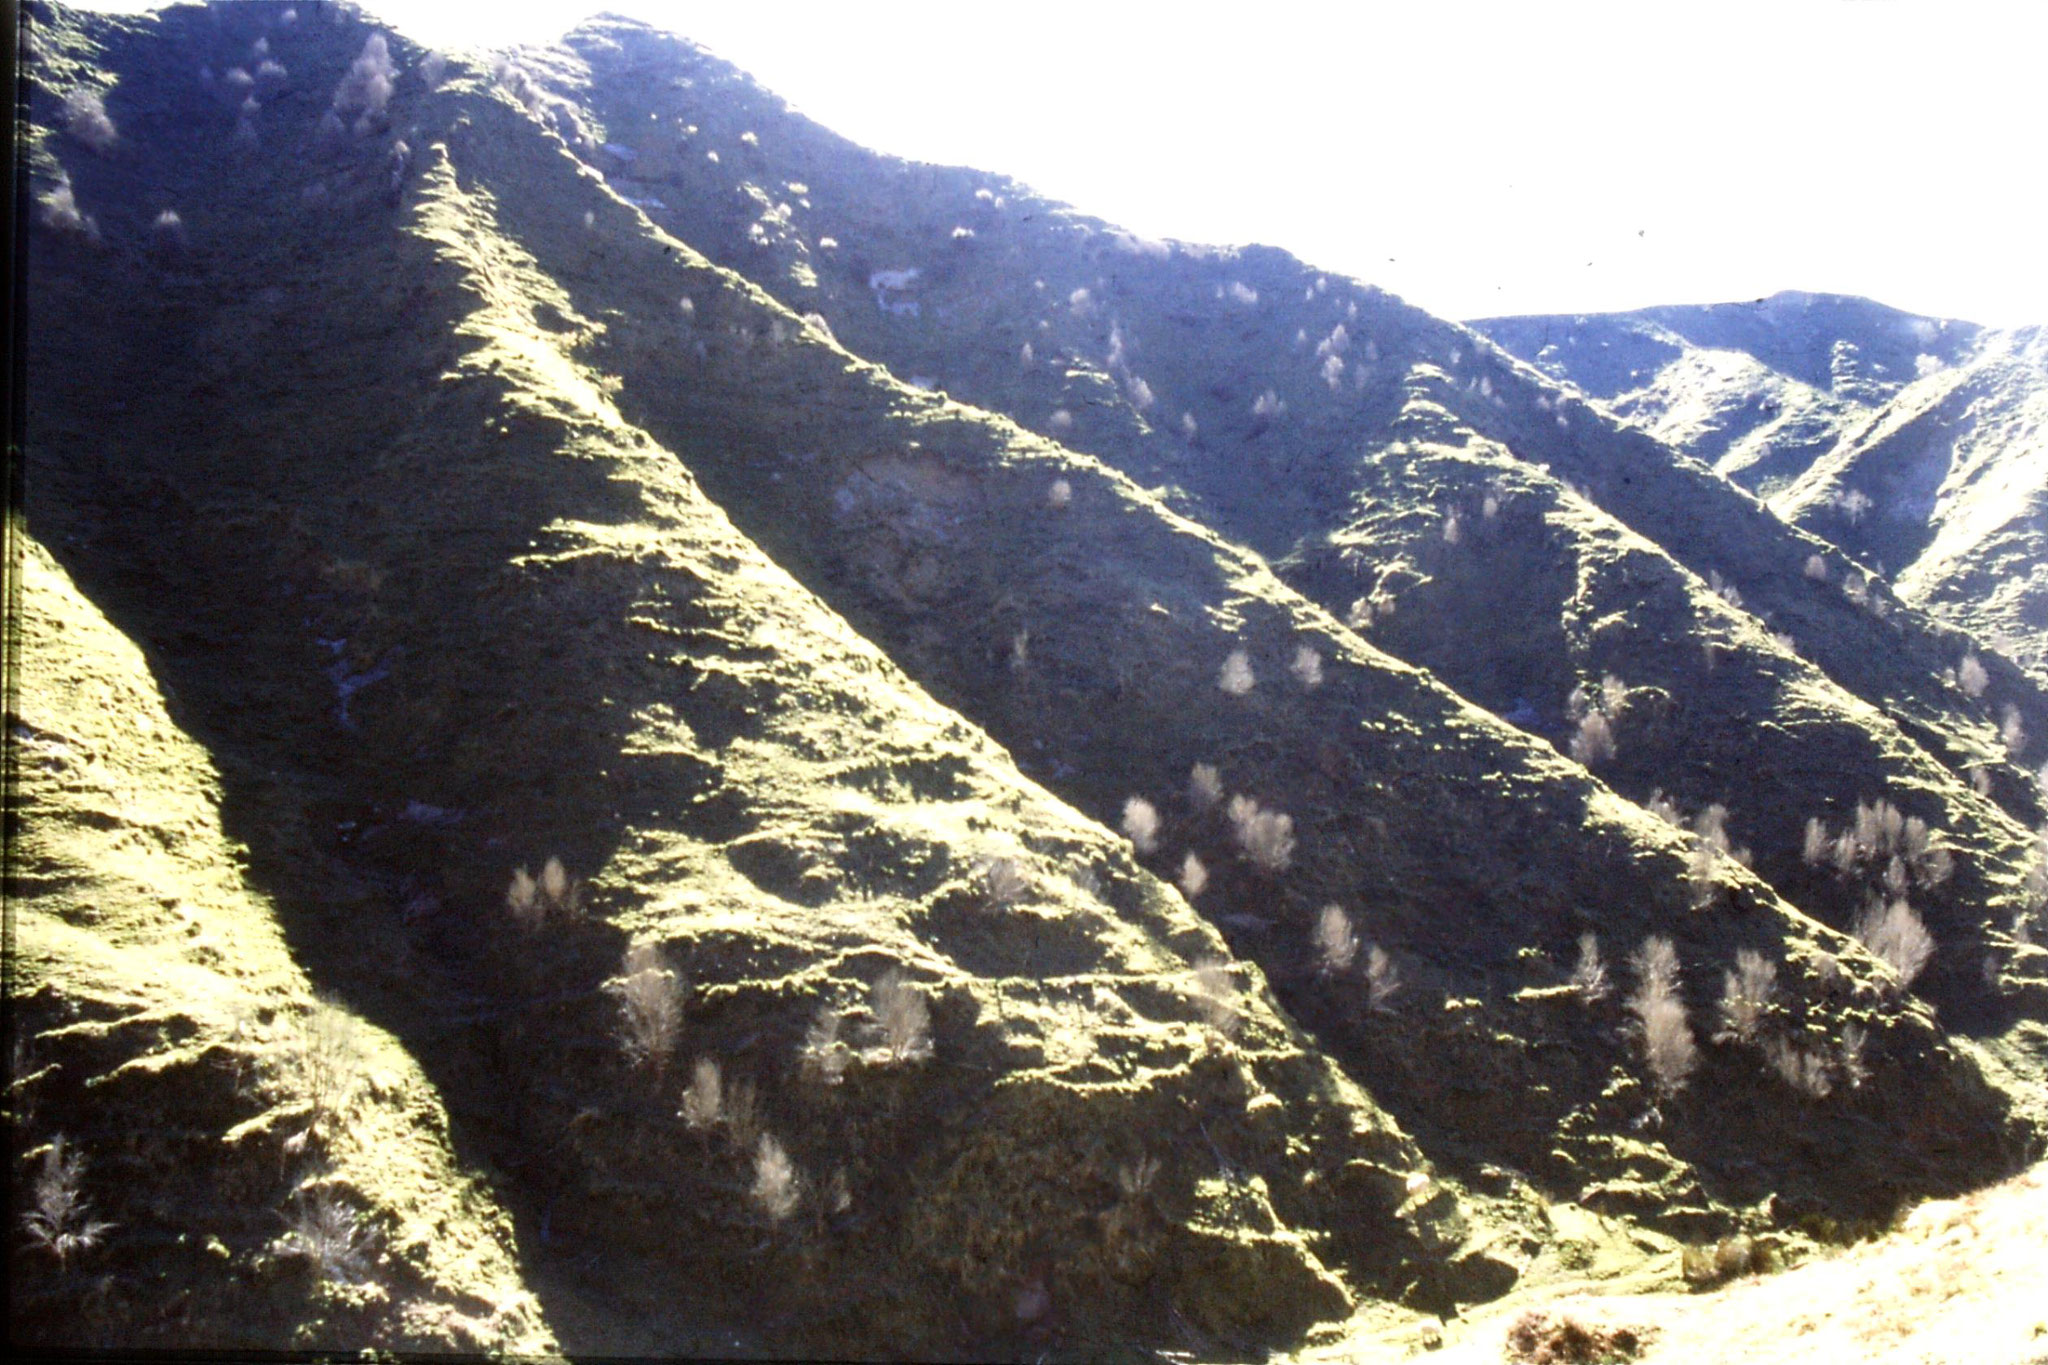 29/8/1990: 1: hills after Moki tunnel